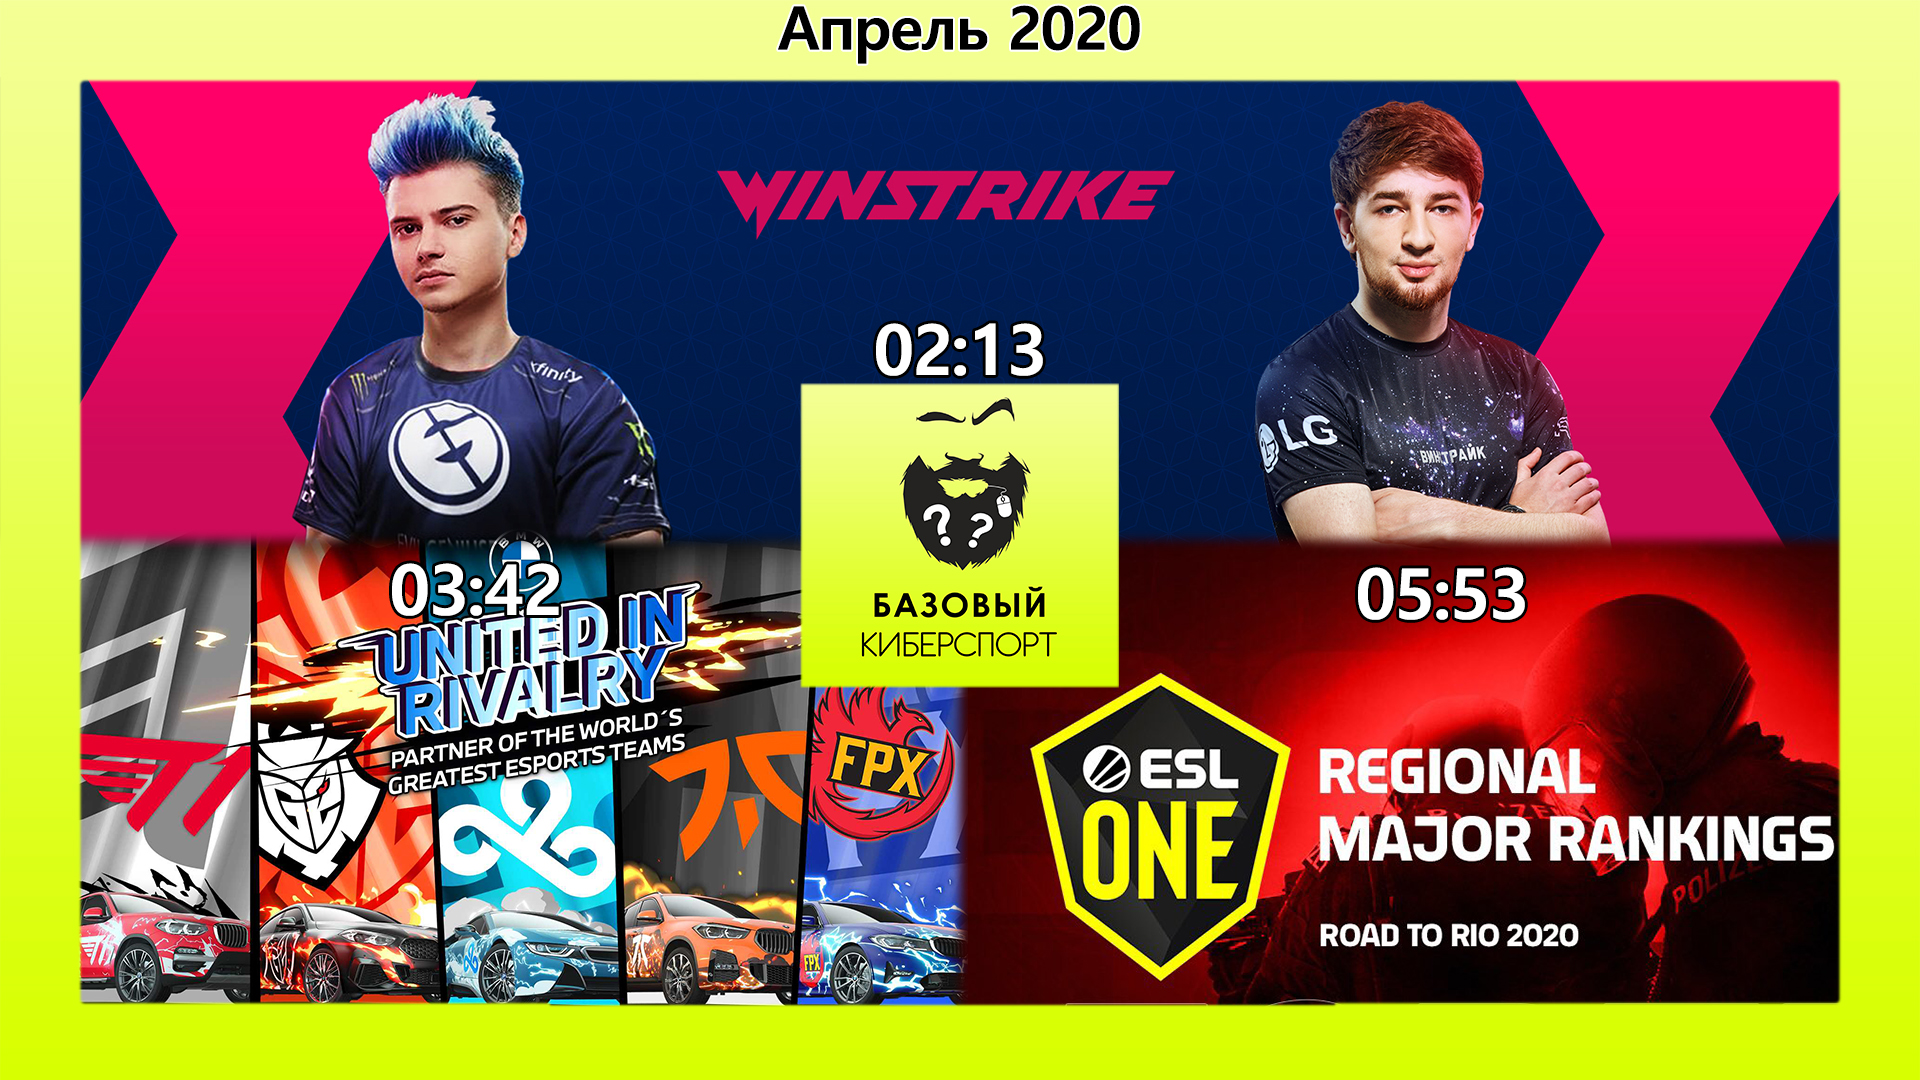 Winstrike Org, League of Legends, Dota 2, Avangar, Counter-Strike: Global Offensive